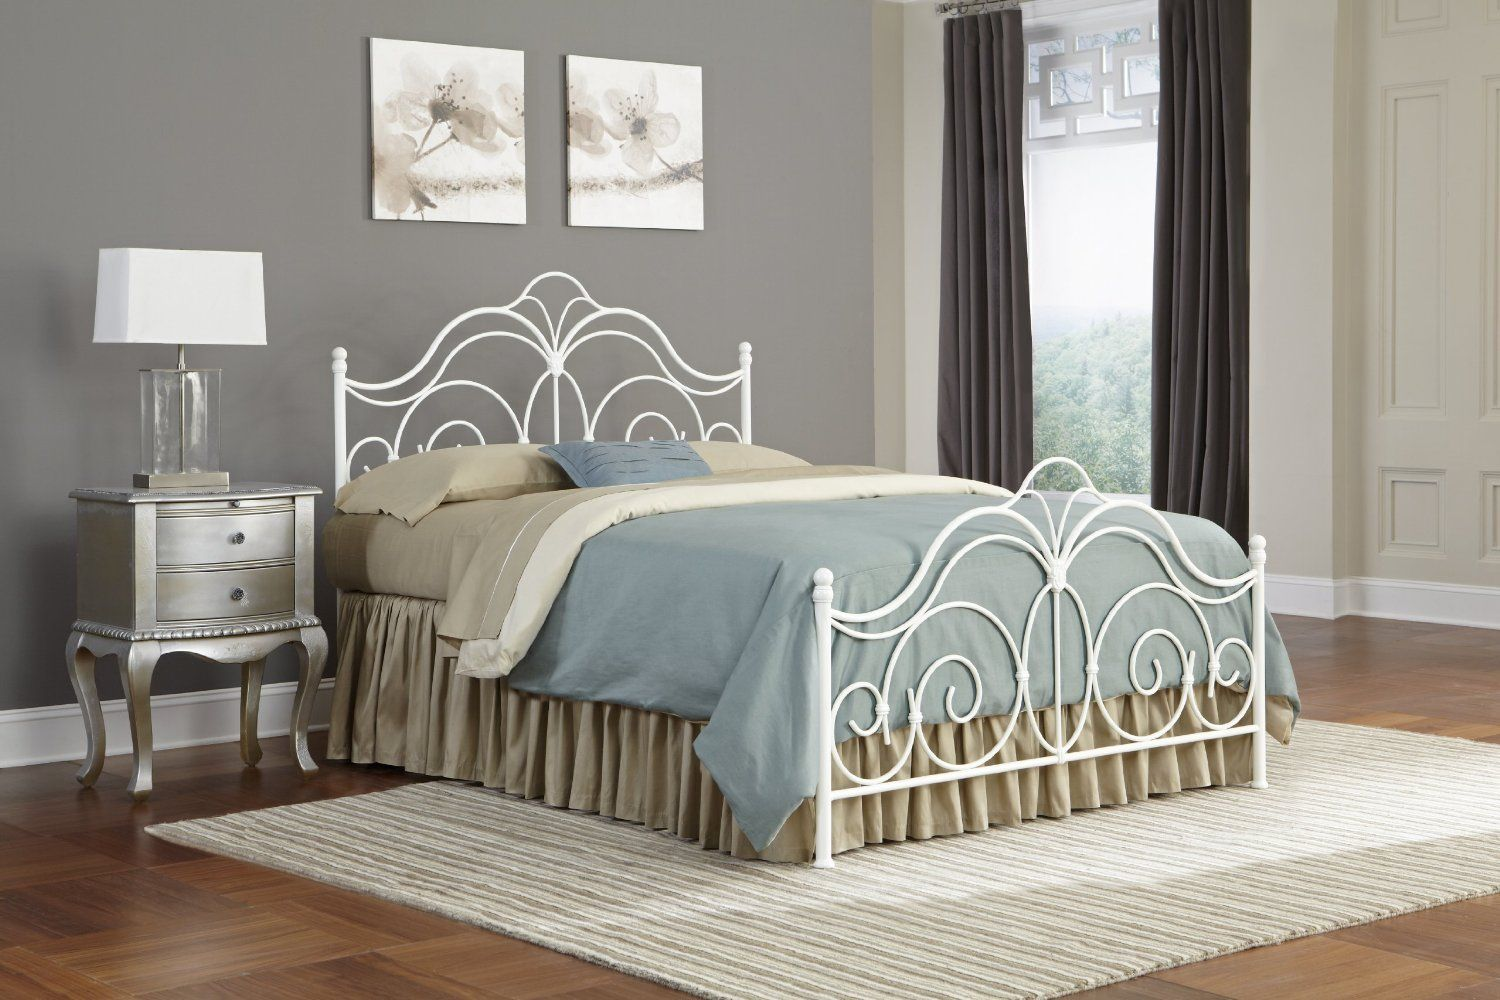 Bedroom: Dexter Metal Headboard With Decorative Castings